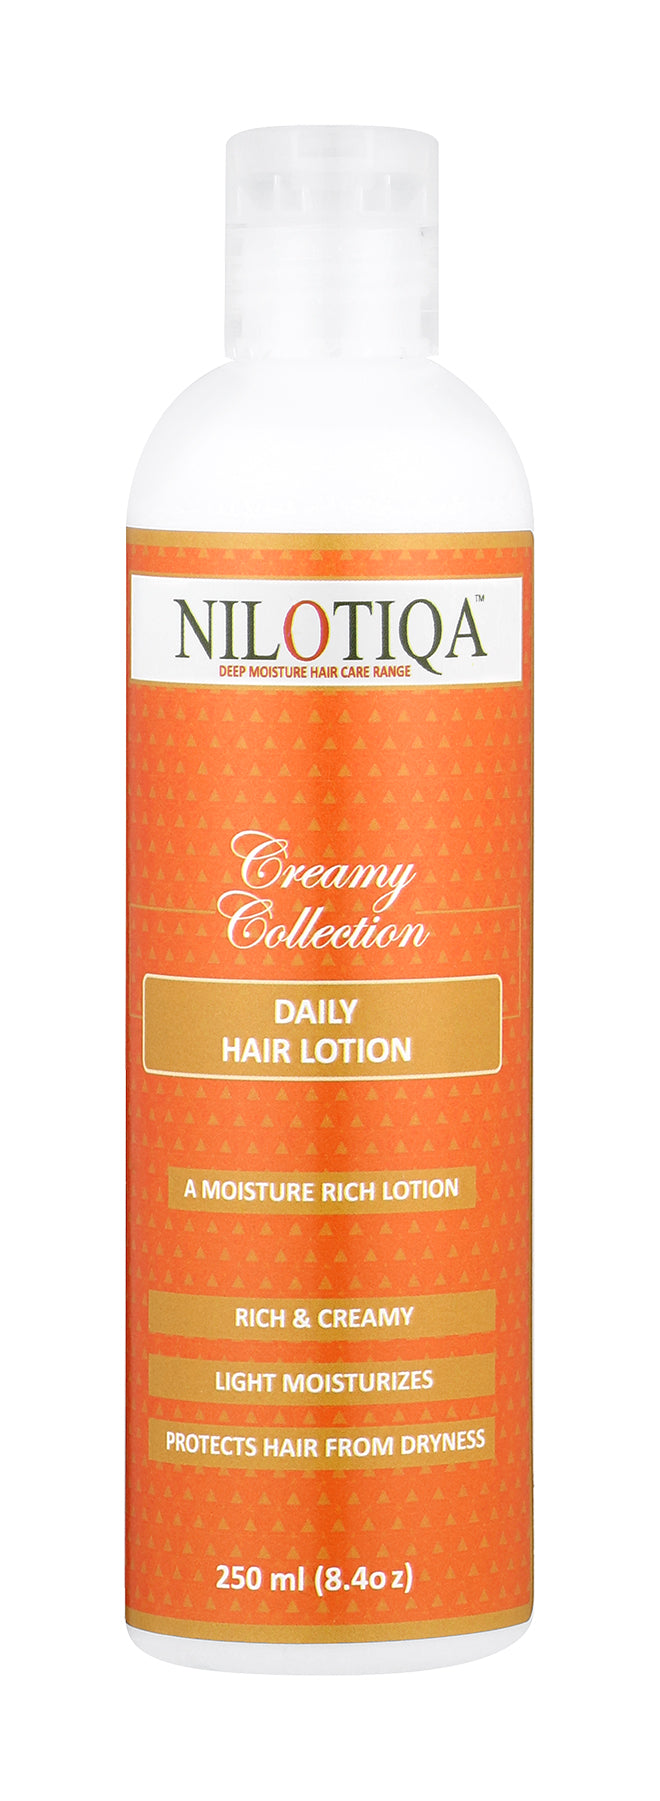 250ml Daily Hair Lotion